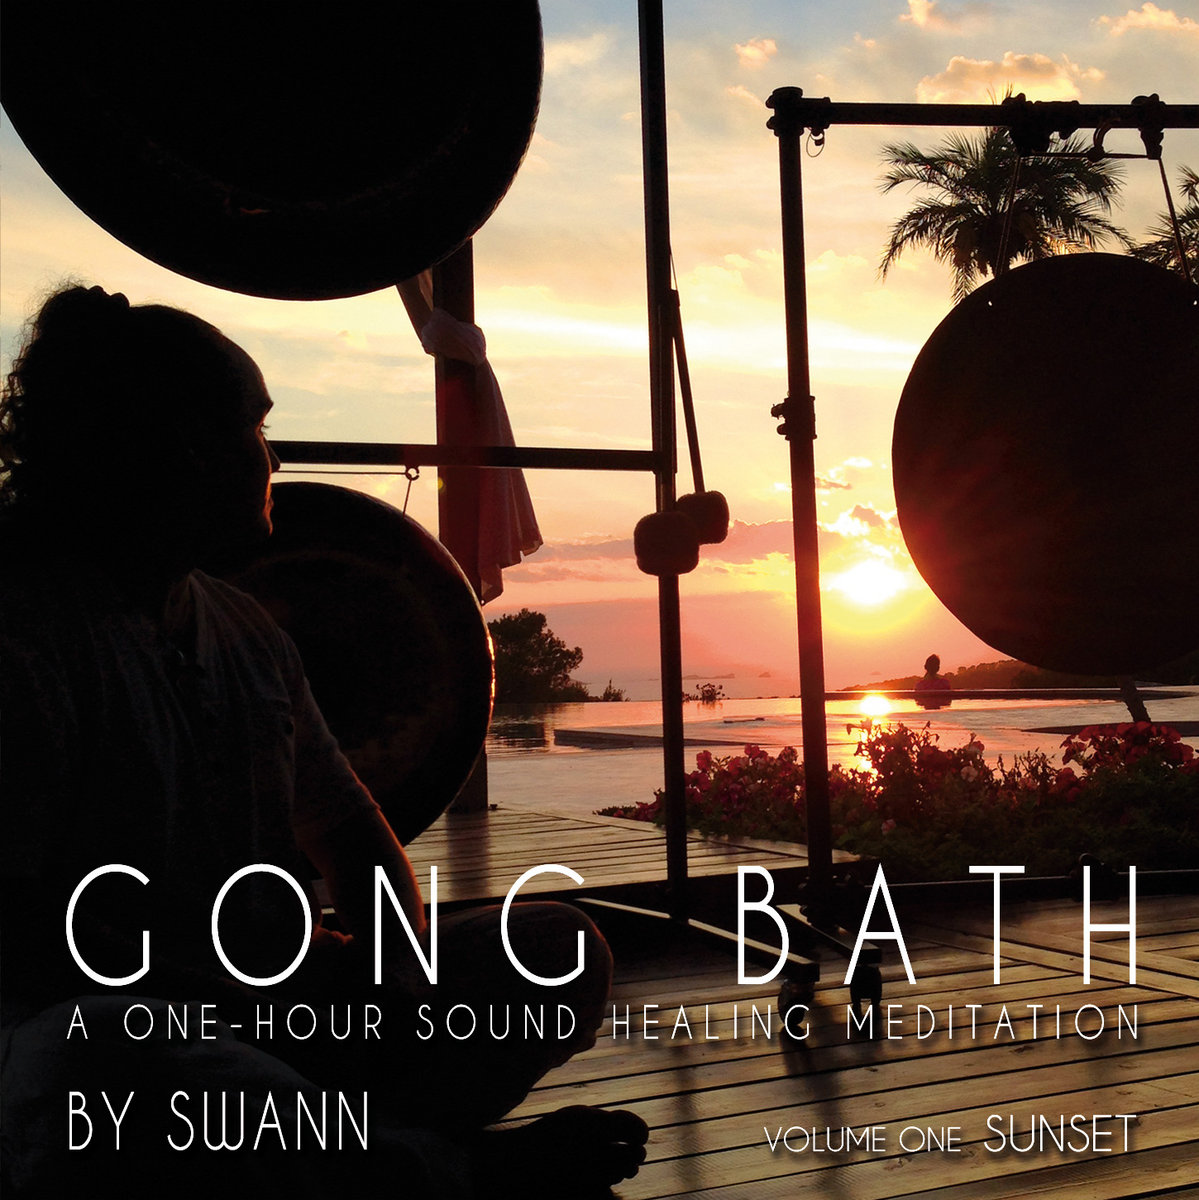 Gong bath vol 1 sunset zen and sounds for Bathroom s bandcamp